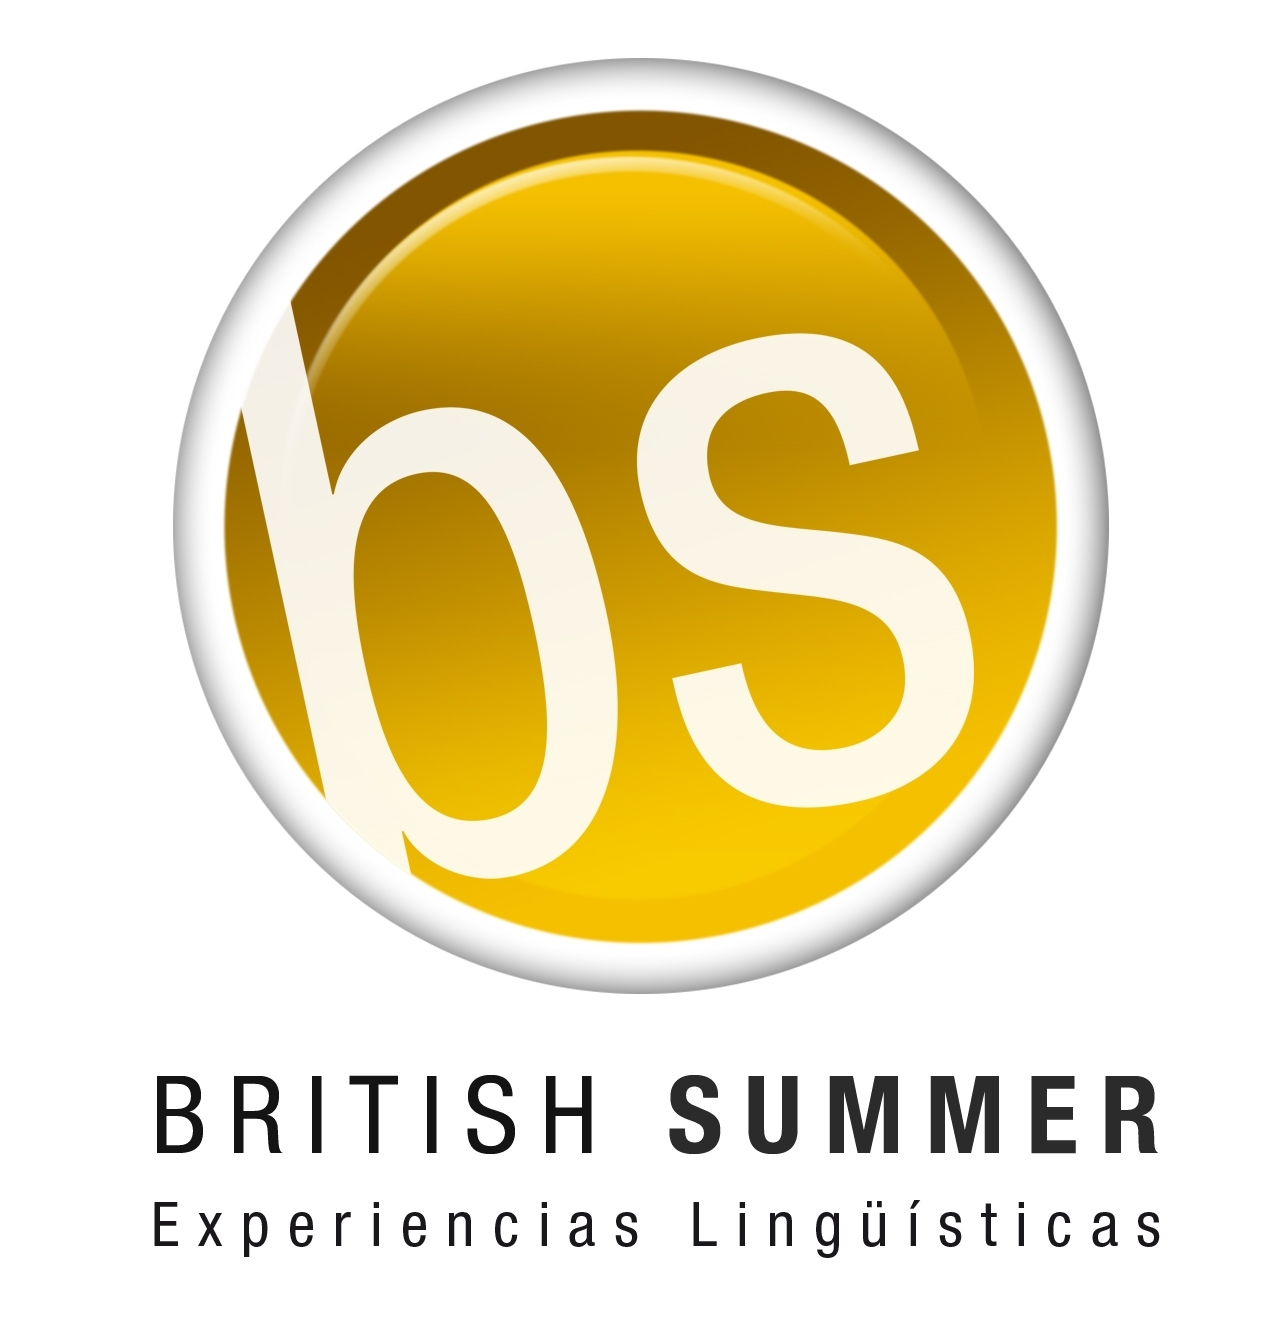 Brittish summer logo 2012